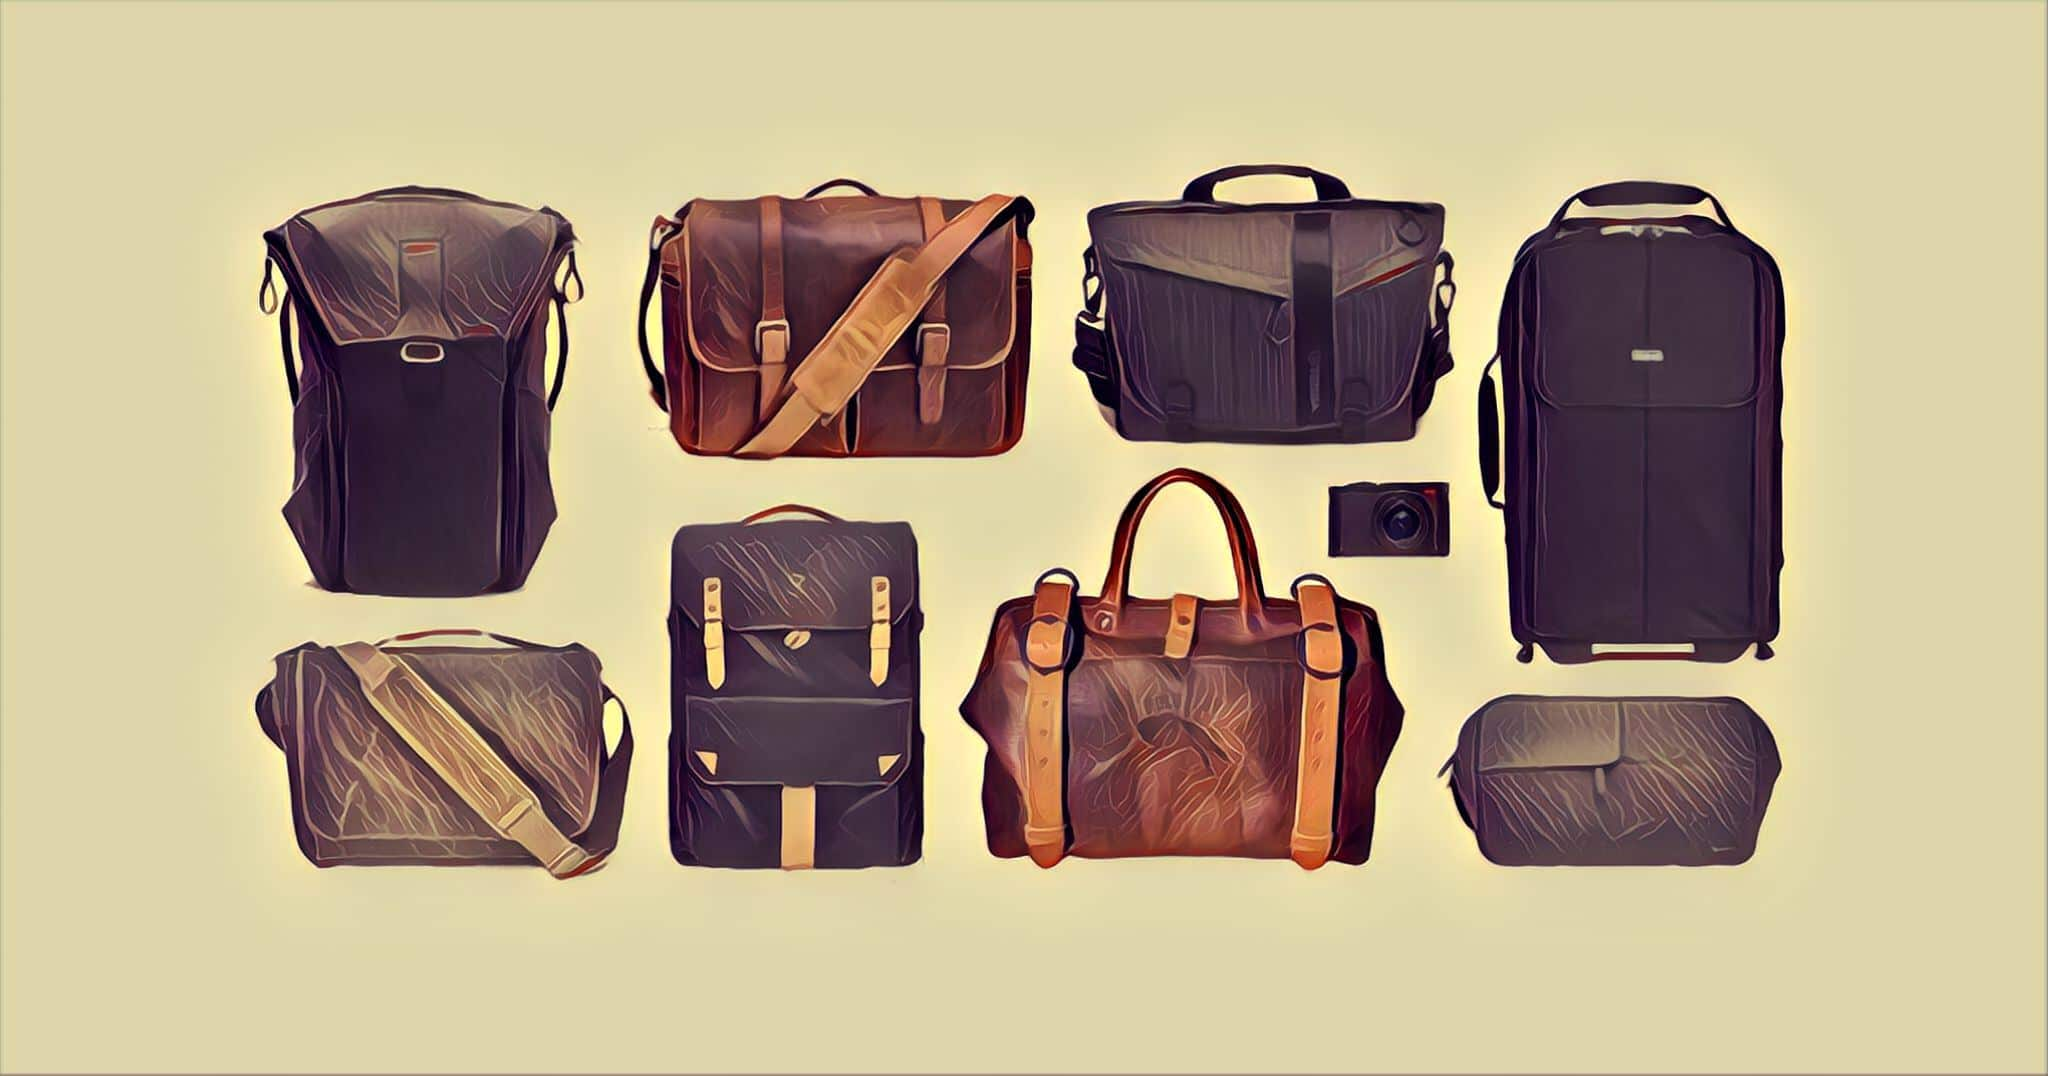 497855a78e3f5 💼 Best Camera Bag in 2019